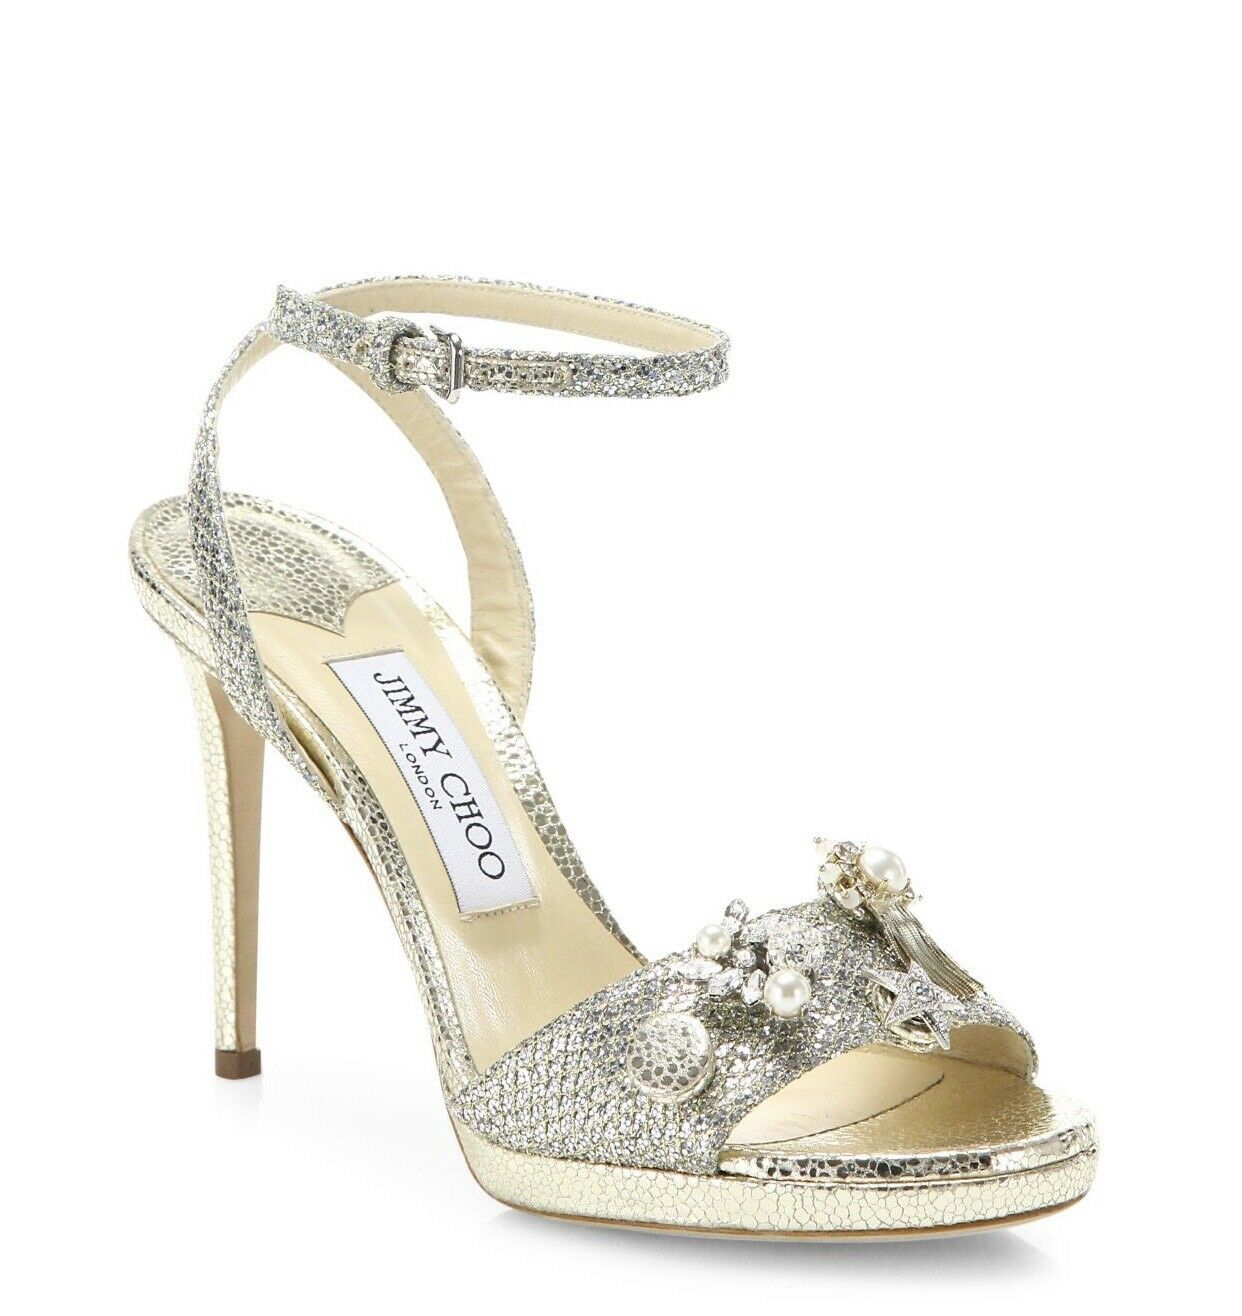 Jimmy Choo Electra 100mm Button Glitter Ankle-Strap Sandals Size 39 9  950.00